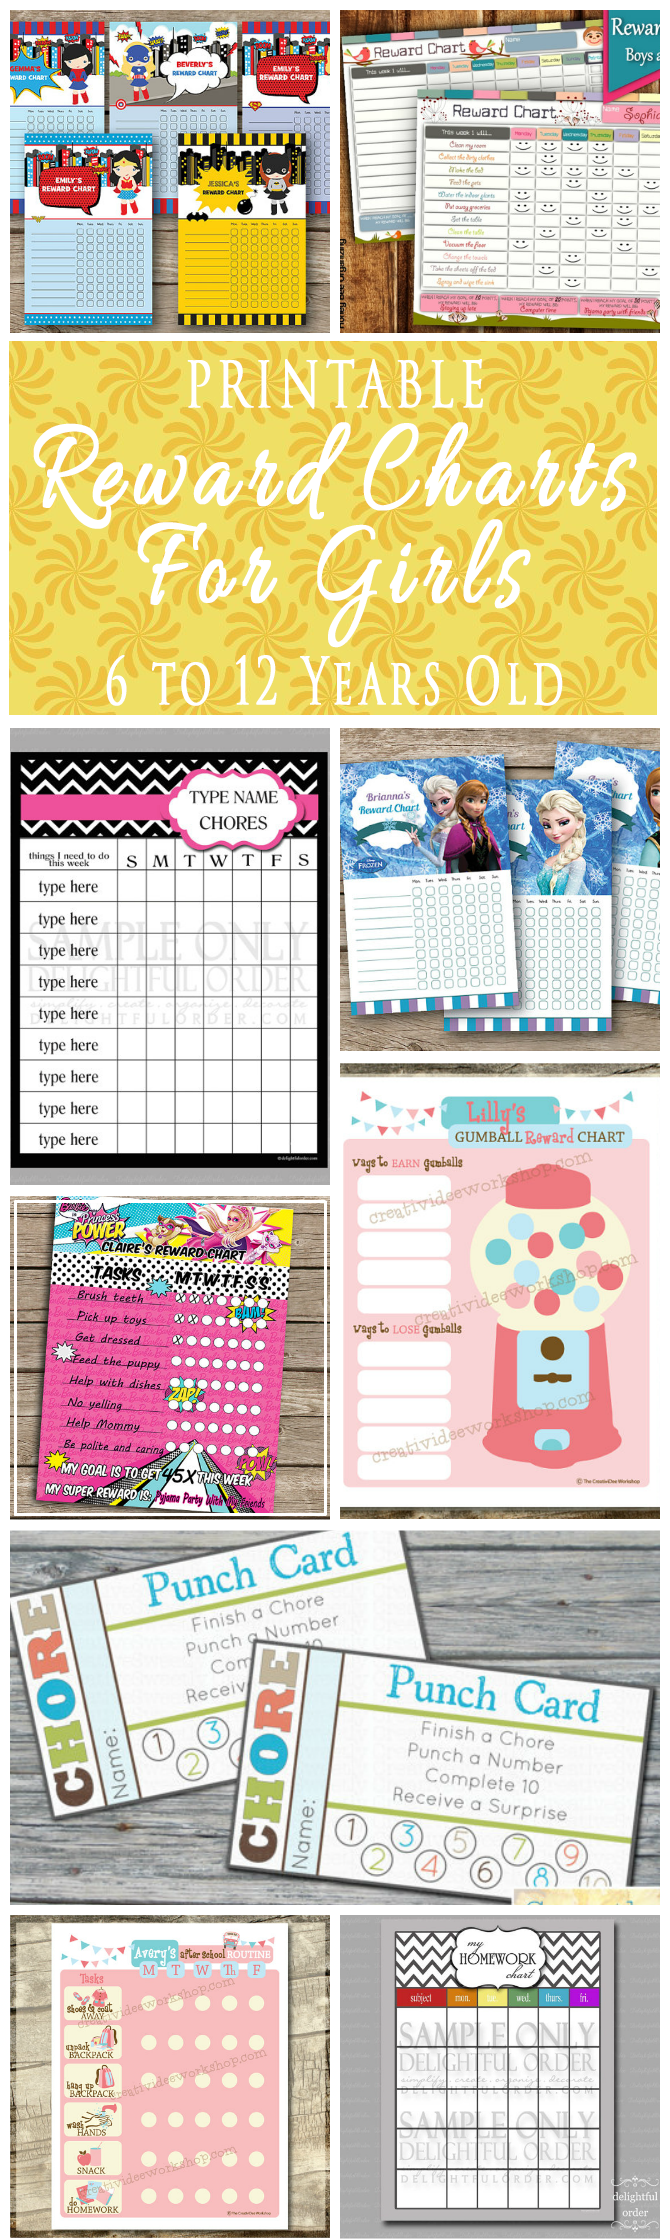 Printable Reward Charts For Kids 6 To 12 Years Old Omg